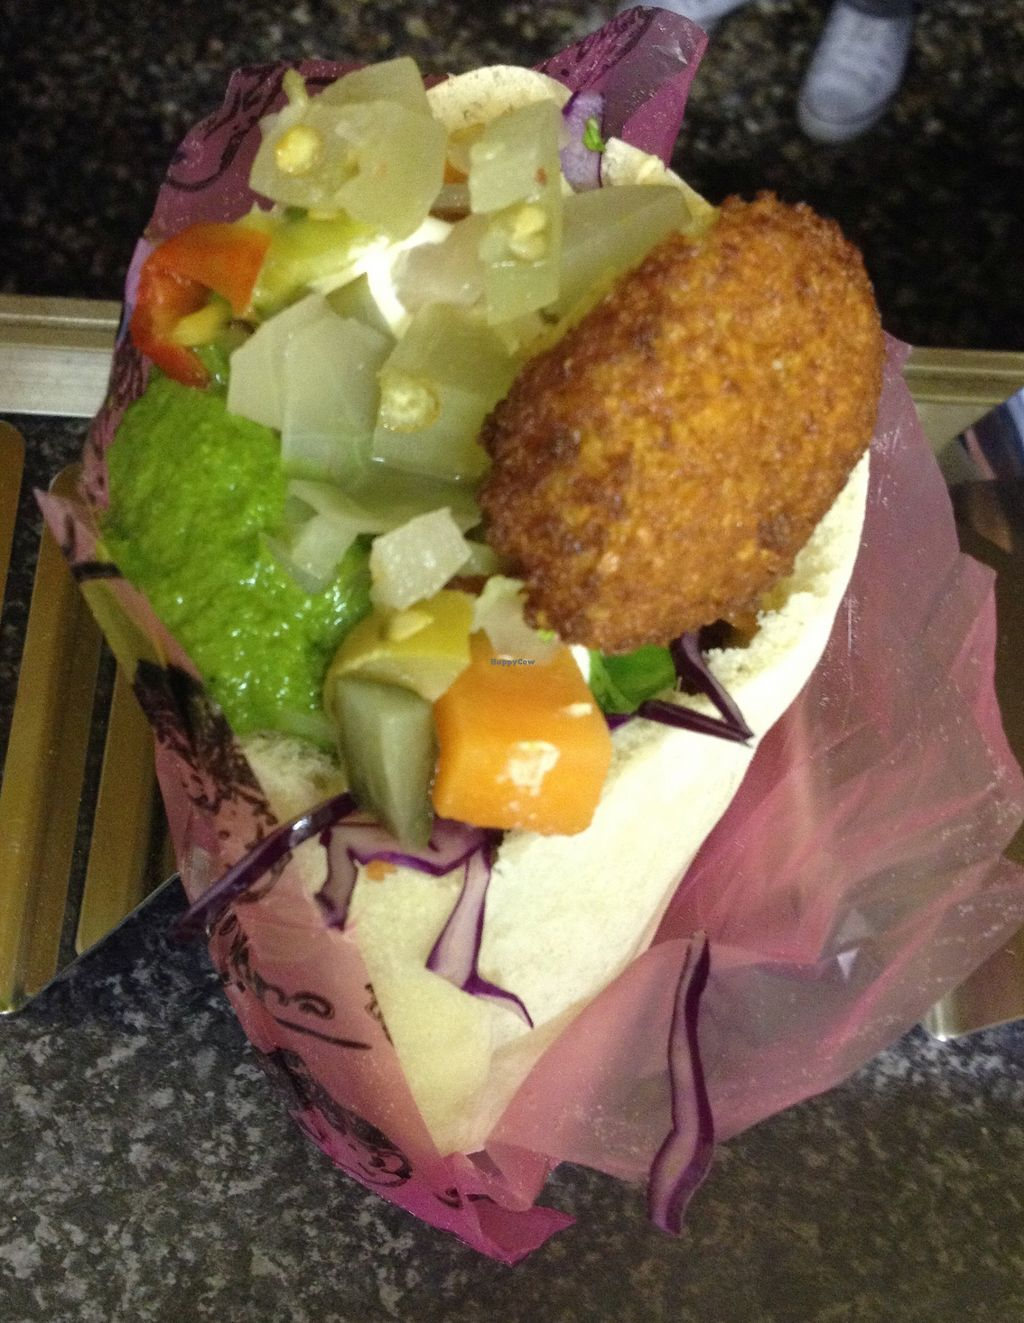 """Photo of Falafel Feast  by <a href=""""/members/profile/falafelfeast"""">falafelfeast</a> <br/>Falafel in Pita served with Houmous, Salad, Chilli, Onion with Sumak, Tehina, Sauerktraut and Pickles <br/> July 31, 2017  - <a href='/contact/abuse/image/96040/286967'>Report</a>"""